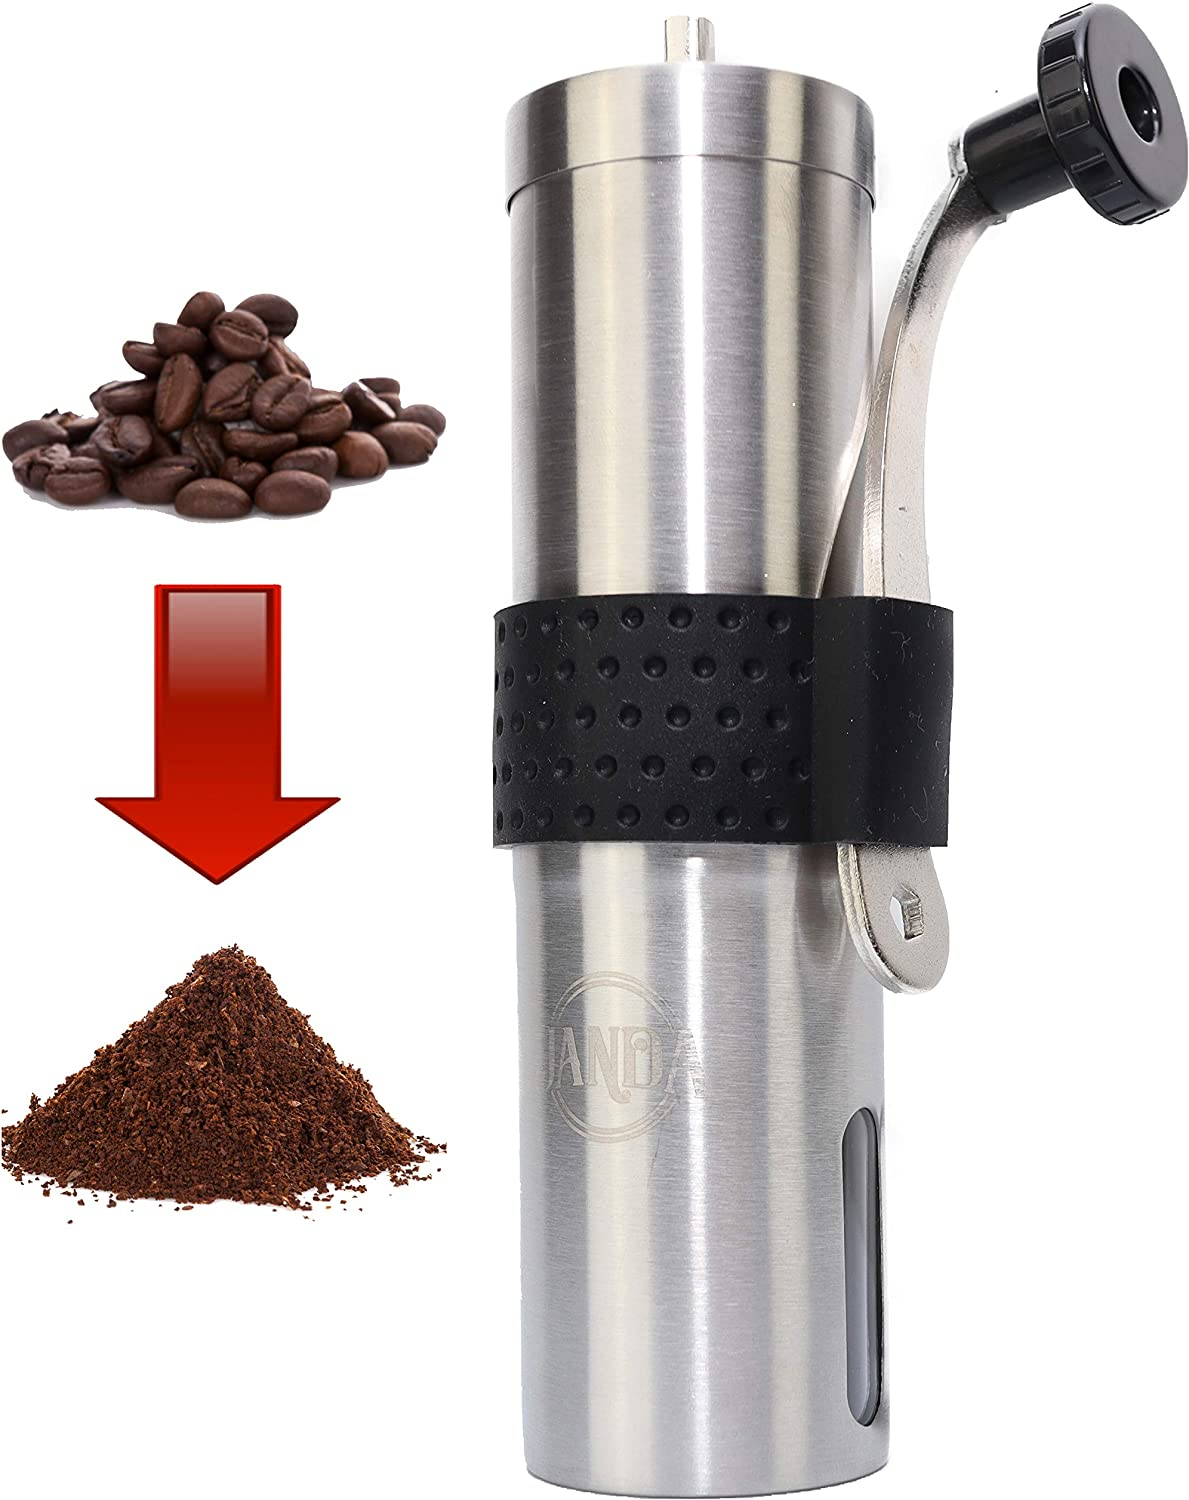 Amazon Com Manual Coffee Grinder By Janda Products Conical Stainless Steel Design And Ceramic Burr Grinder Portable Compact And Reusable For Camping Hand Operated For Coffee Tea Herbs And